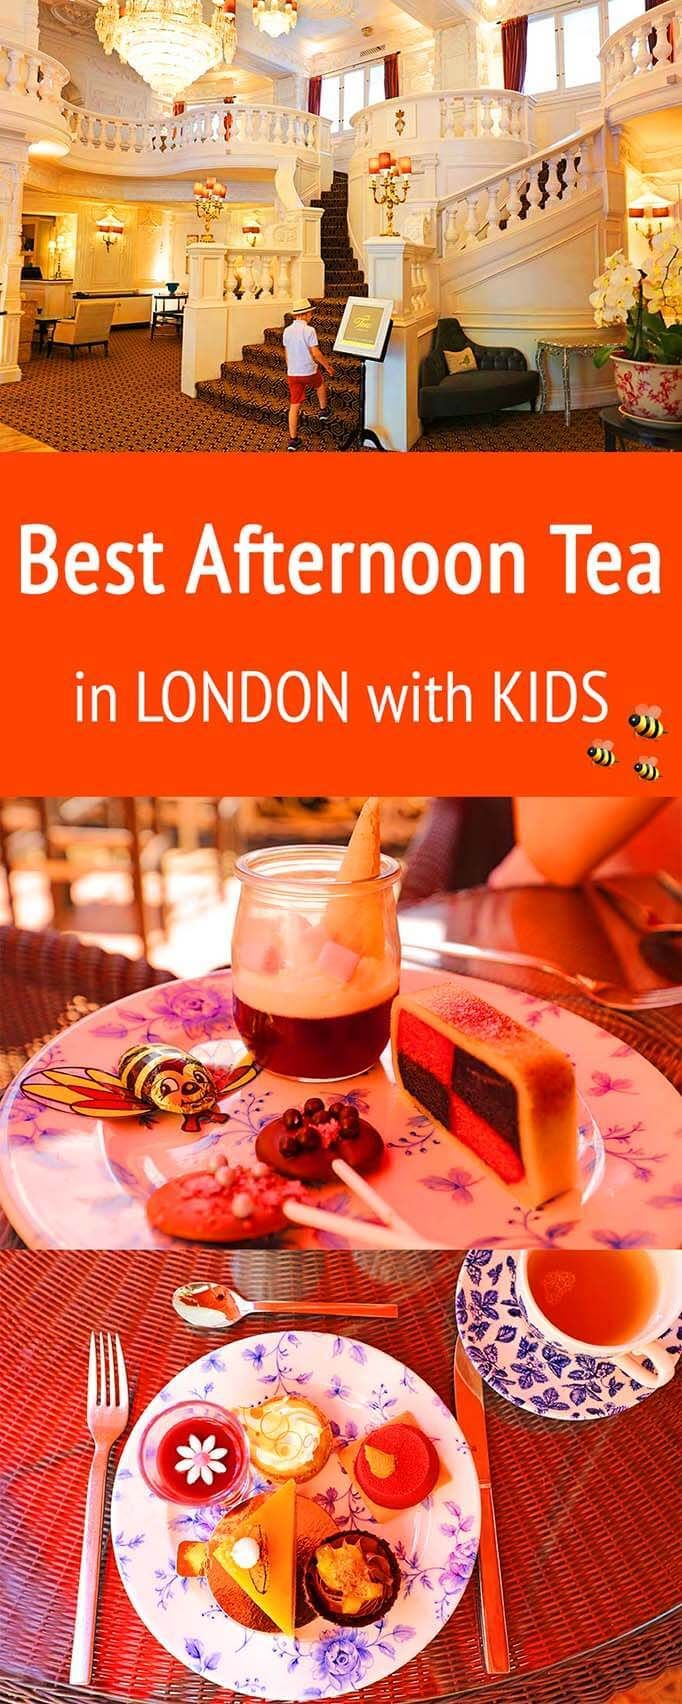 Where to find the best afternoon tea experience in London for families with kids